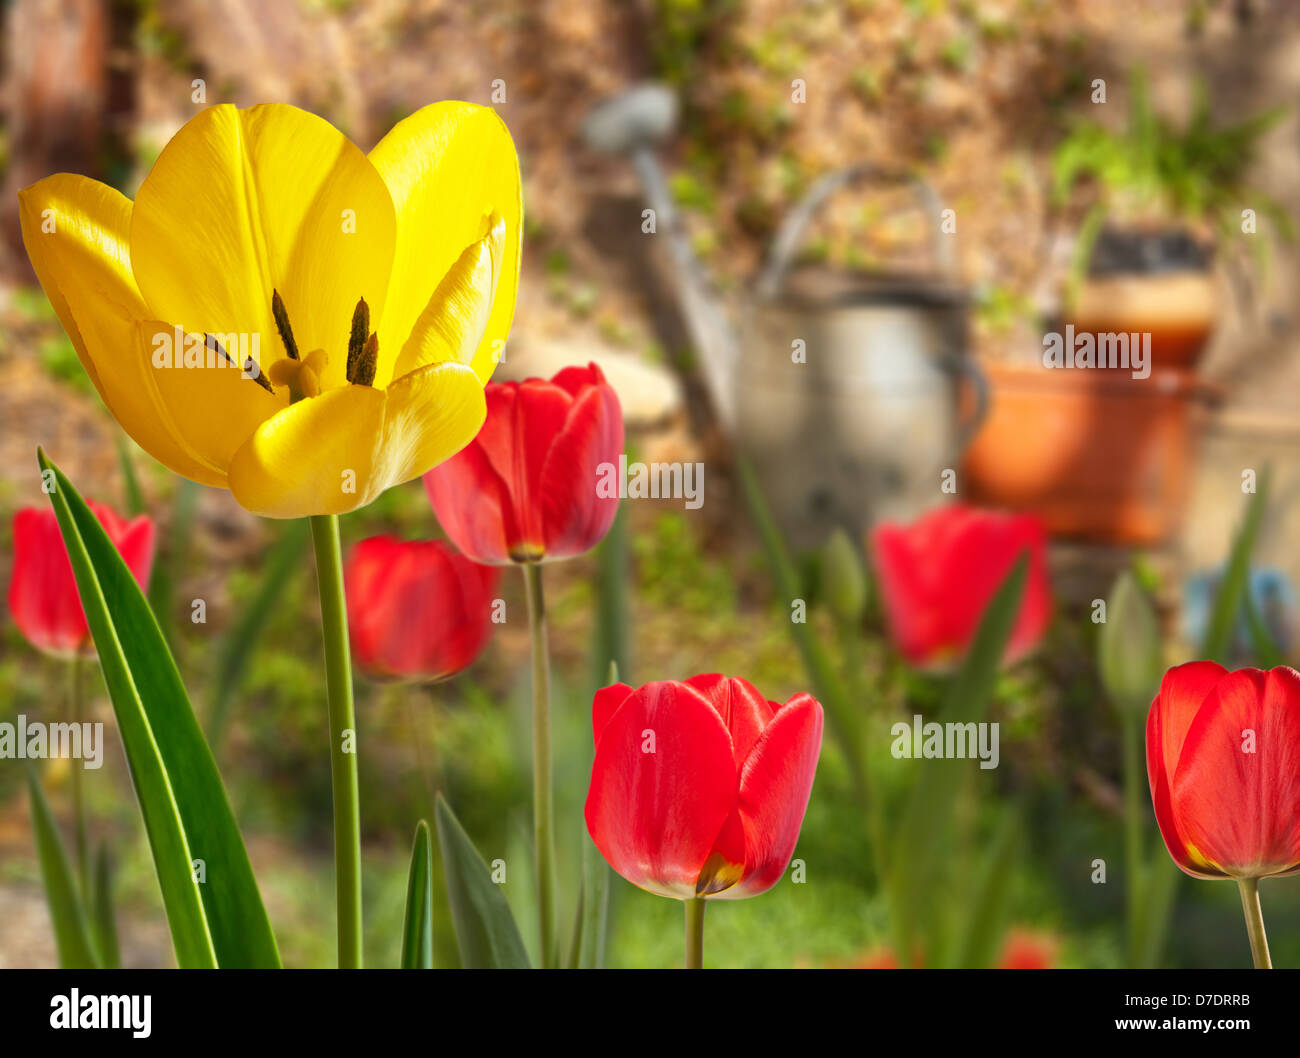 tulips in watering can stockfotos tulips in watering can bilder seite 2 alamy. Black Bedroom Furniture Sets. Home Design Ideas